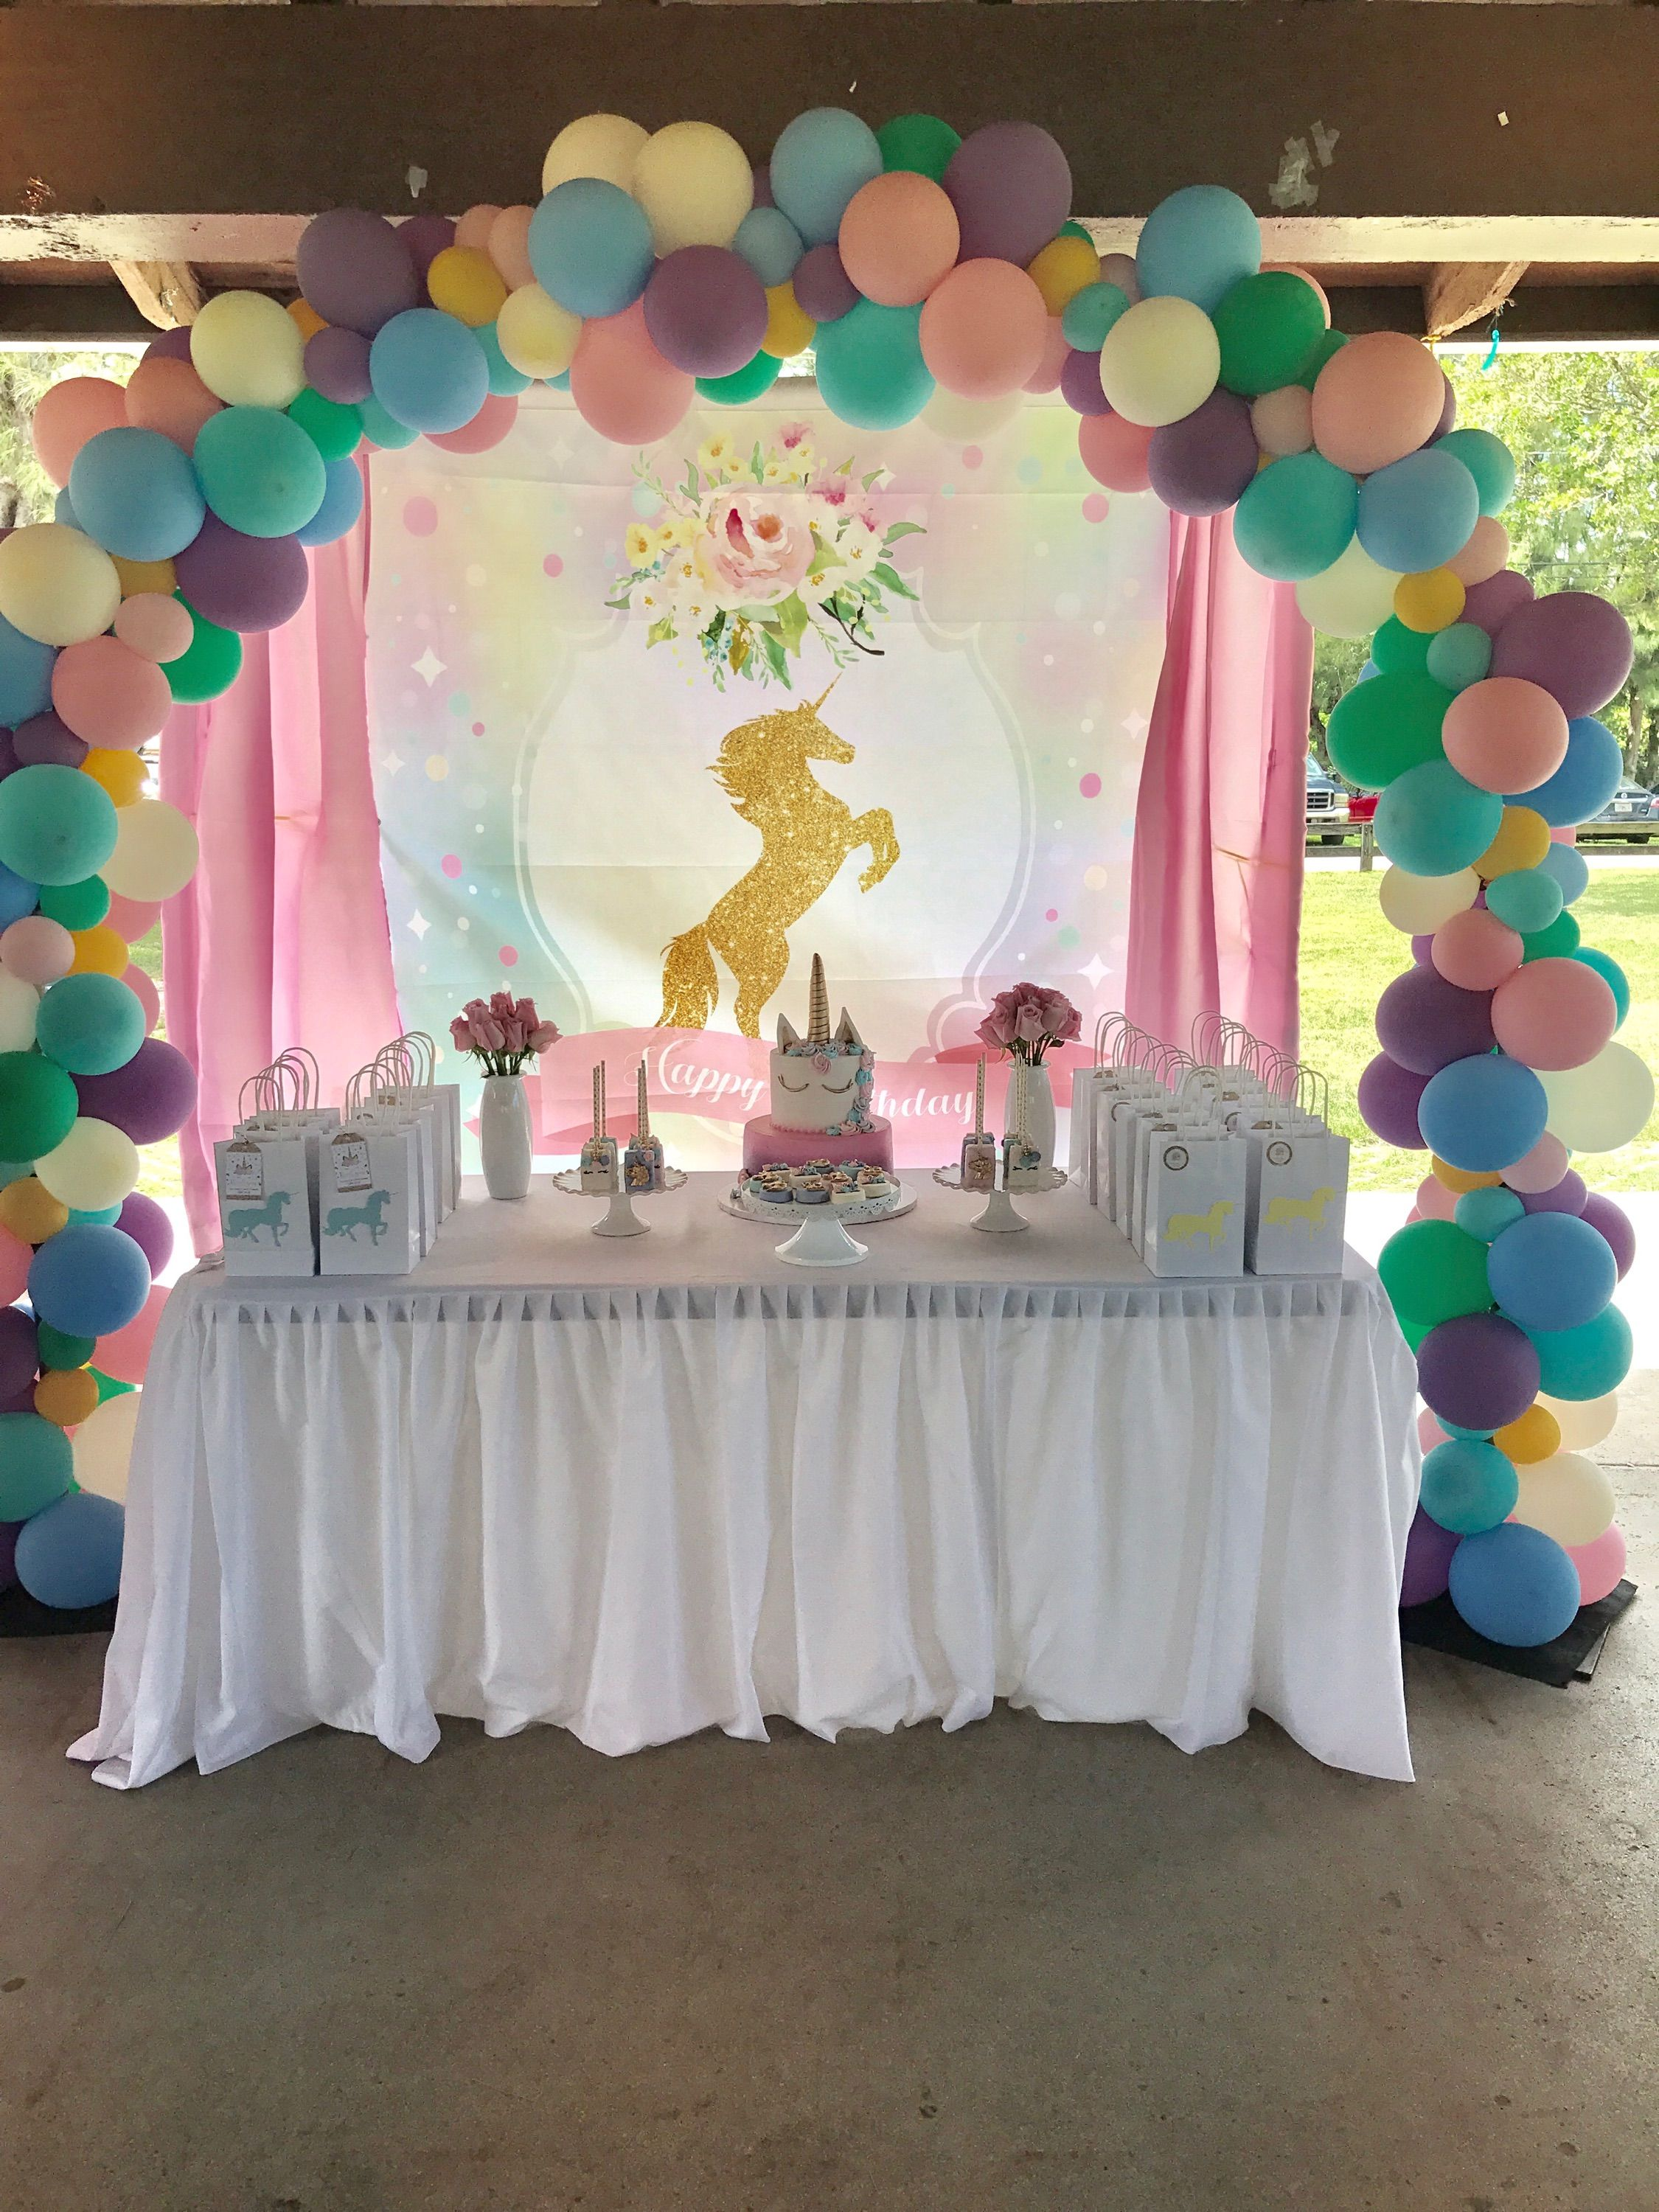 Unicorn Flower DIY Birthday Party Backdrop Decorations Baby Shower In 2019